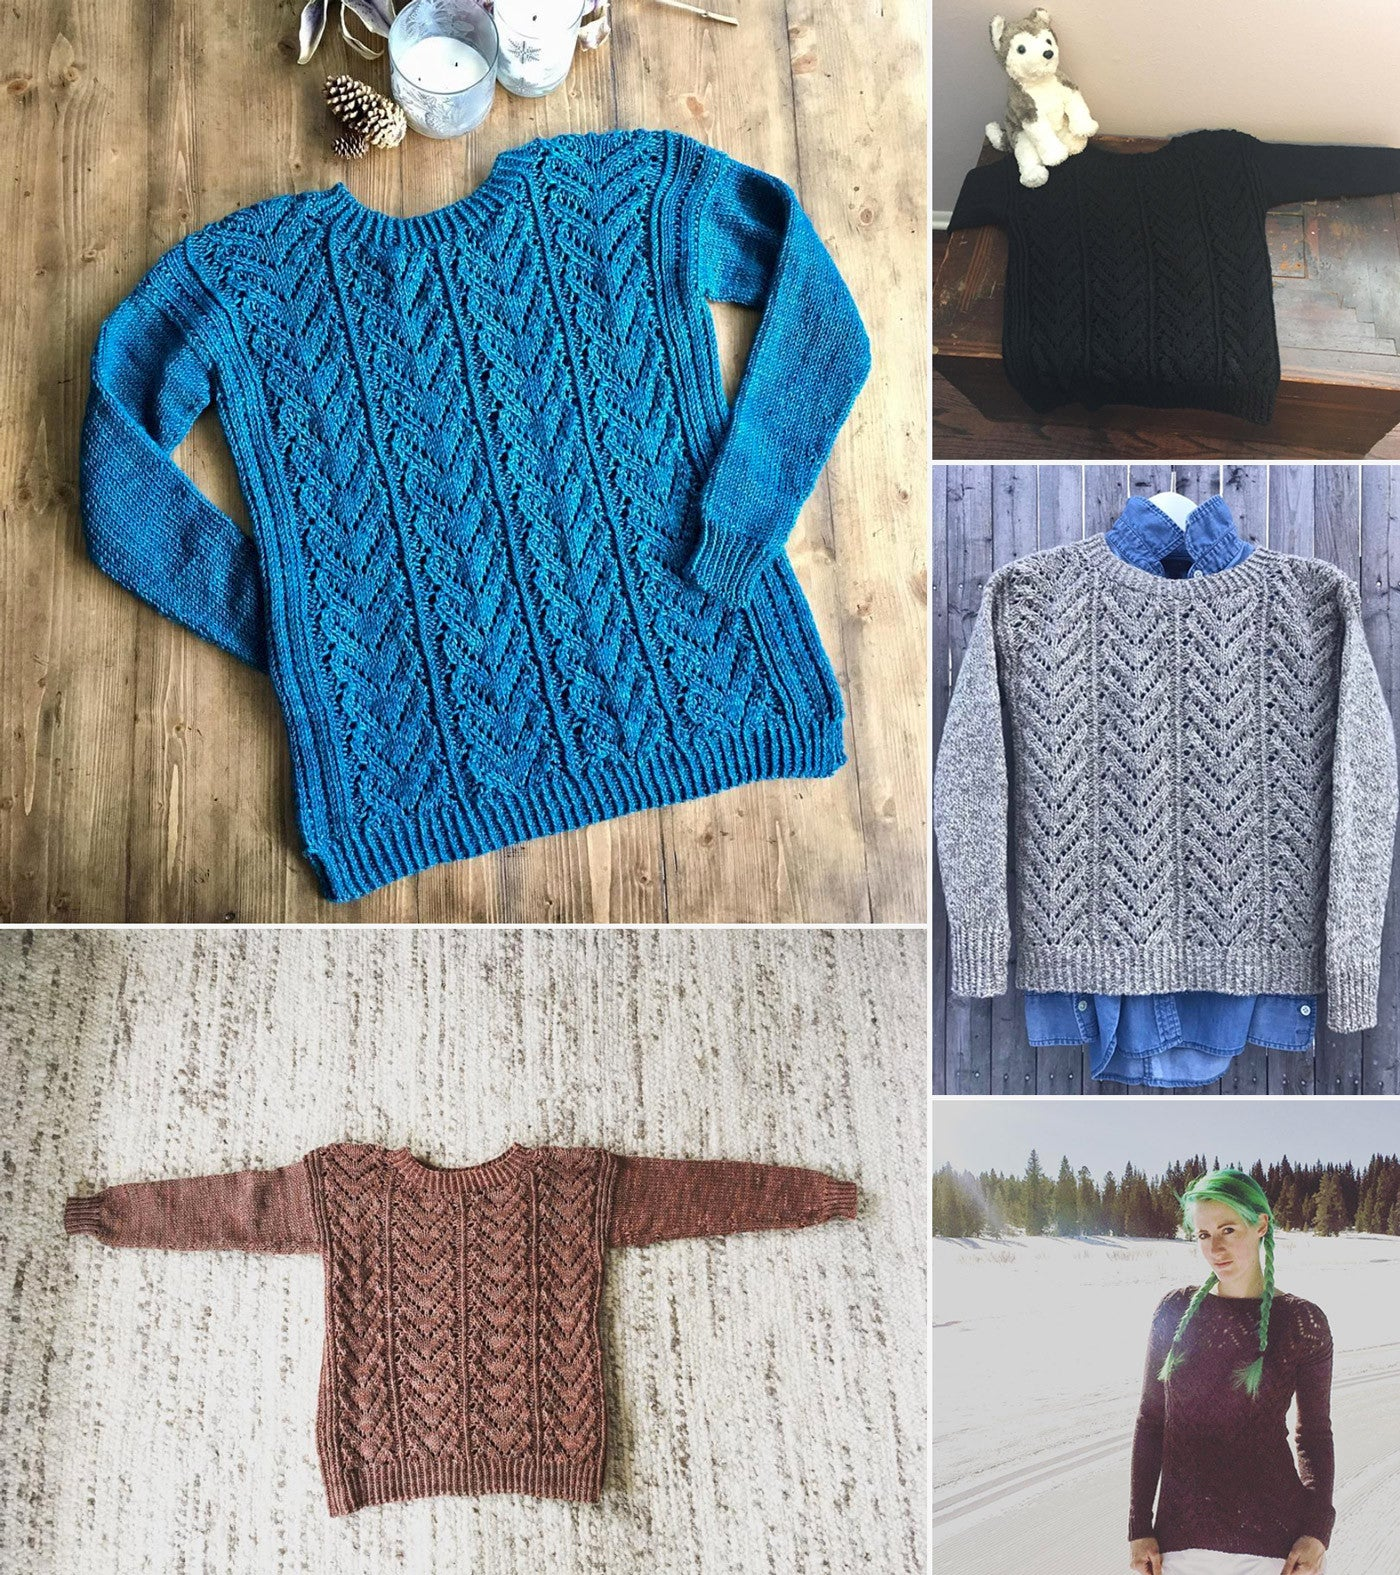 Best Finished Sweater Photo Runner-Ups